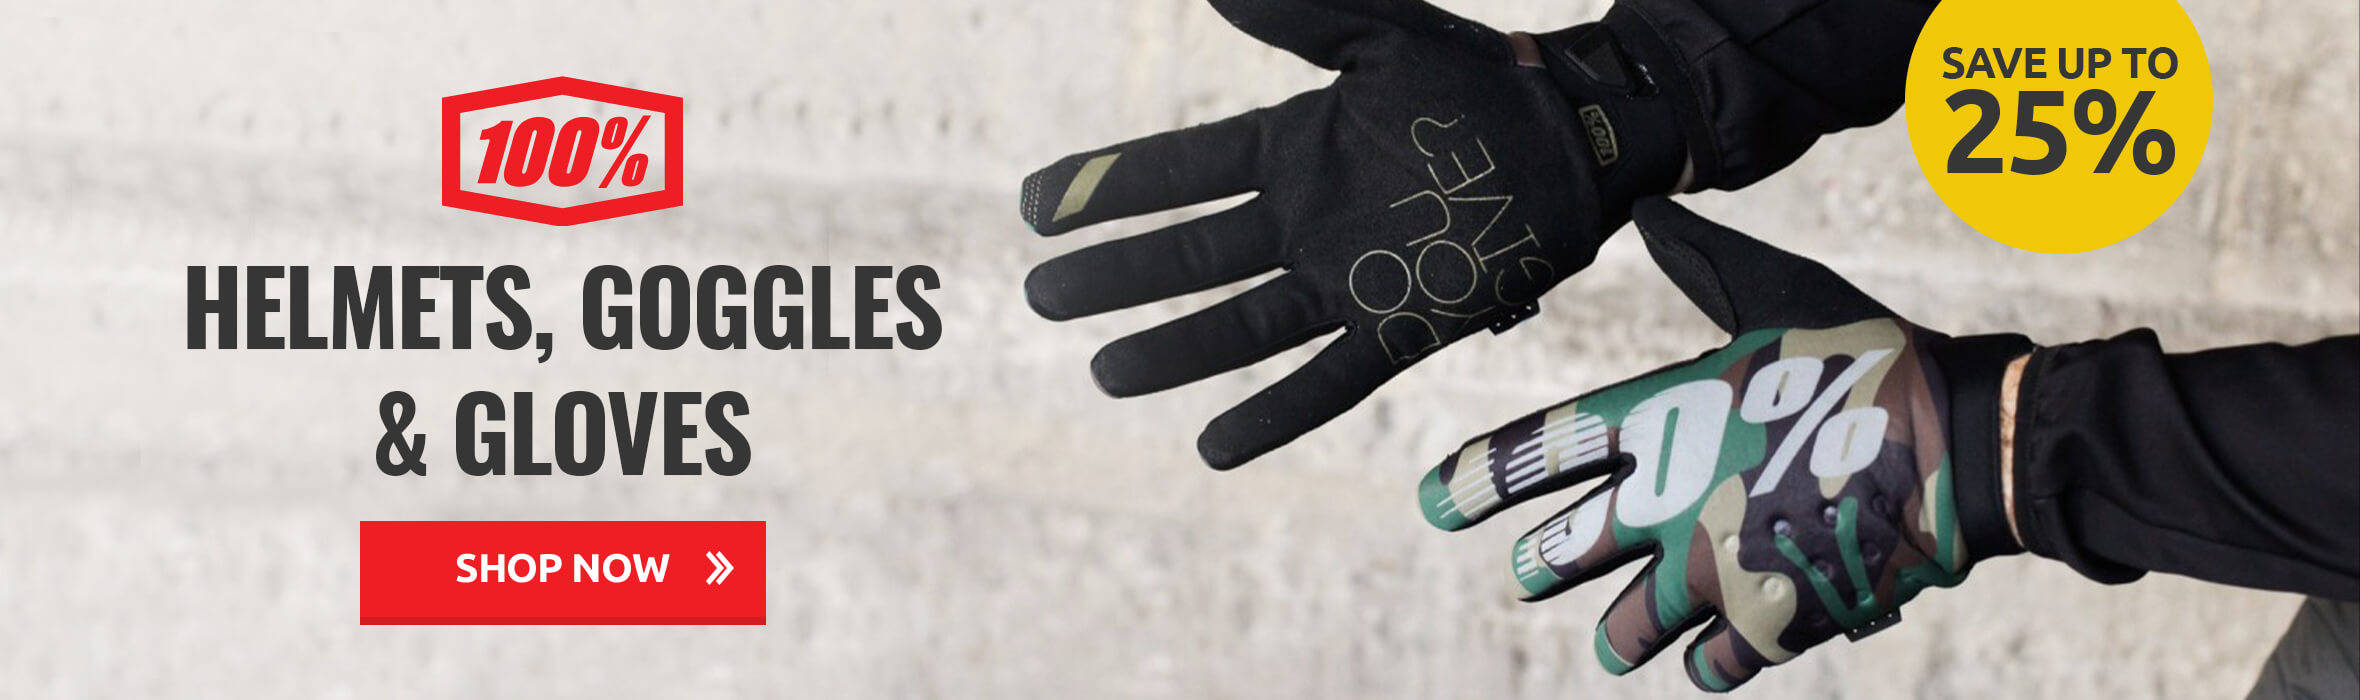 Save up to 25% on 100% Helmets, Goggles & Gloves